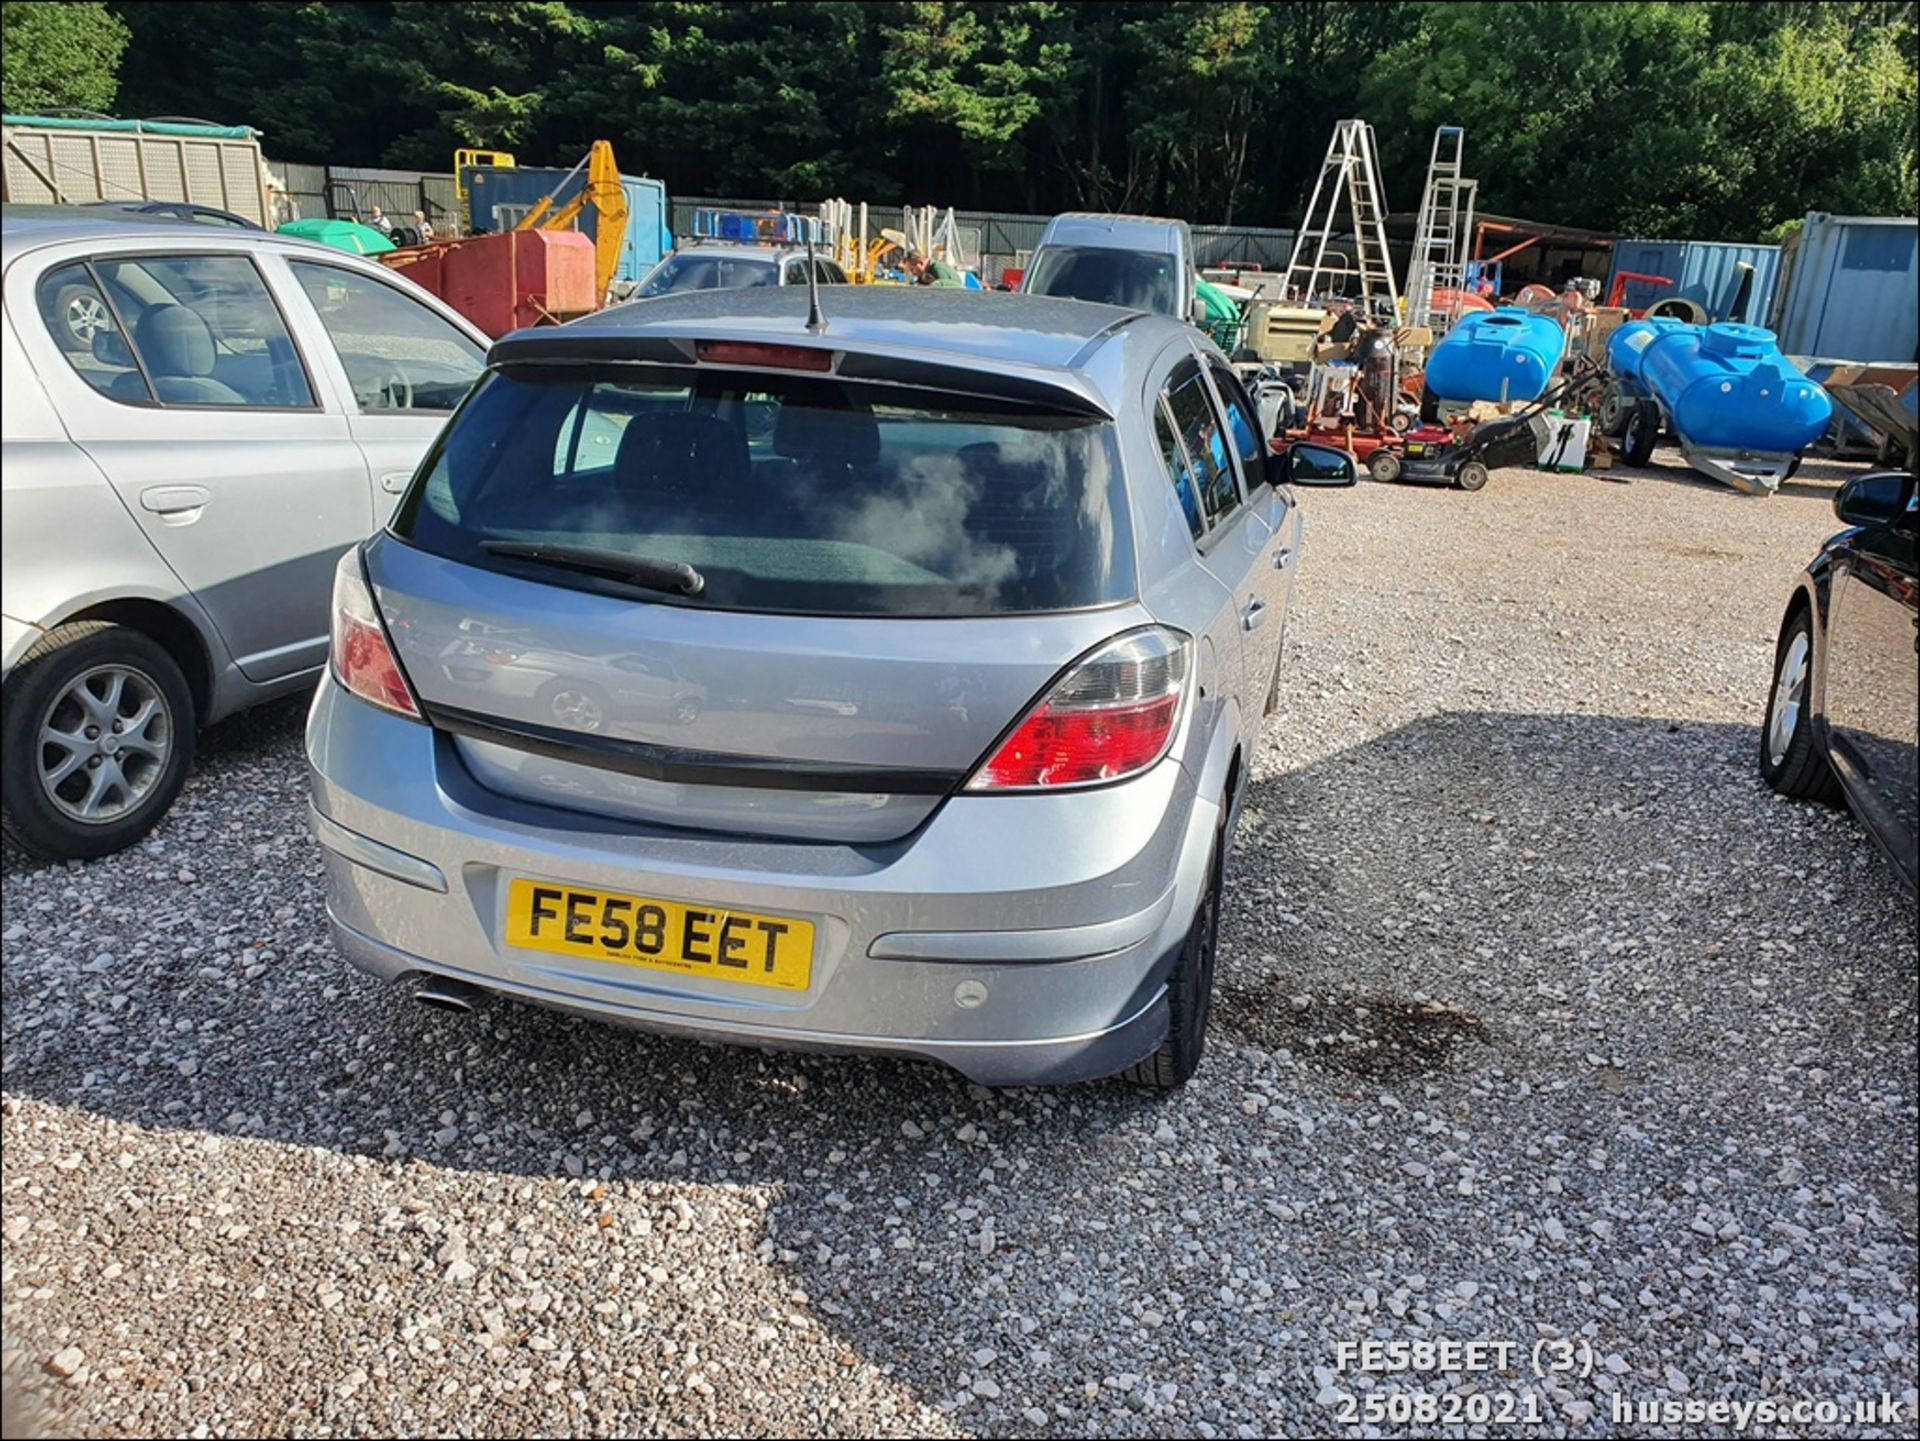 08/58 VAUXHALL ASTRA CLUB CDTI 100 - 1686cc 5dr Hatchback (Silver, 115k) - Image 4 of 15